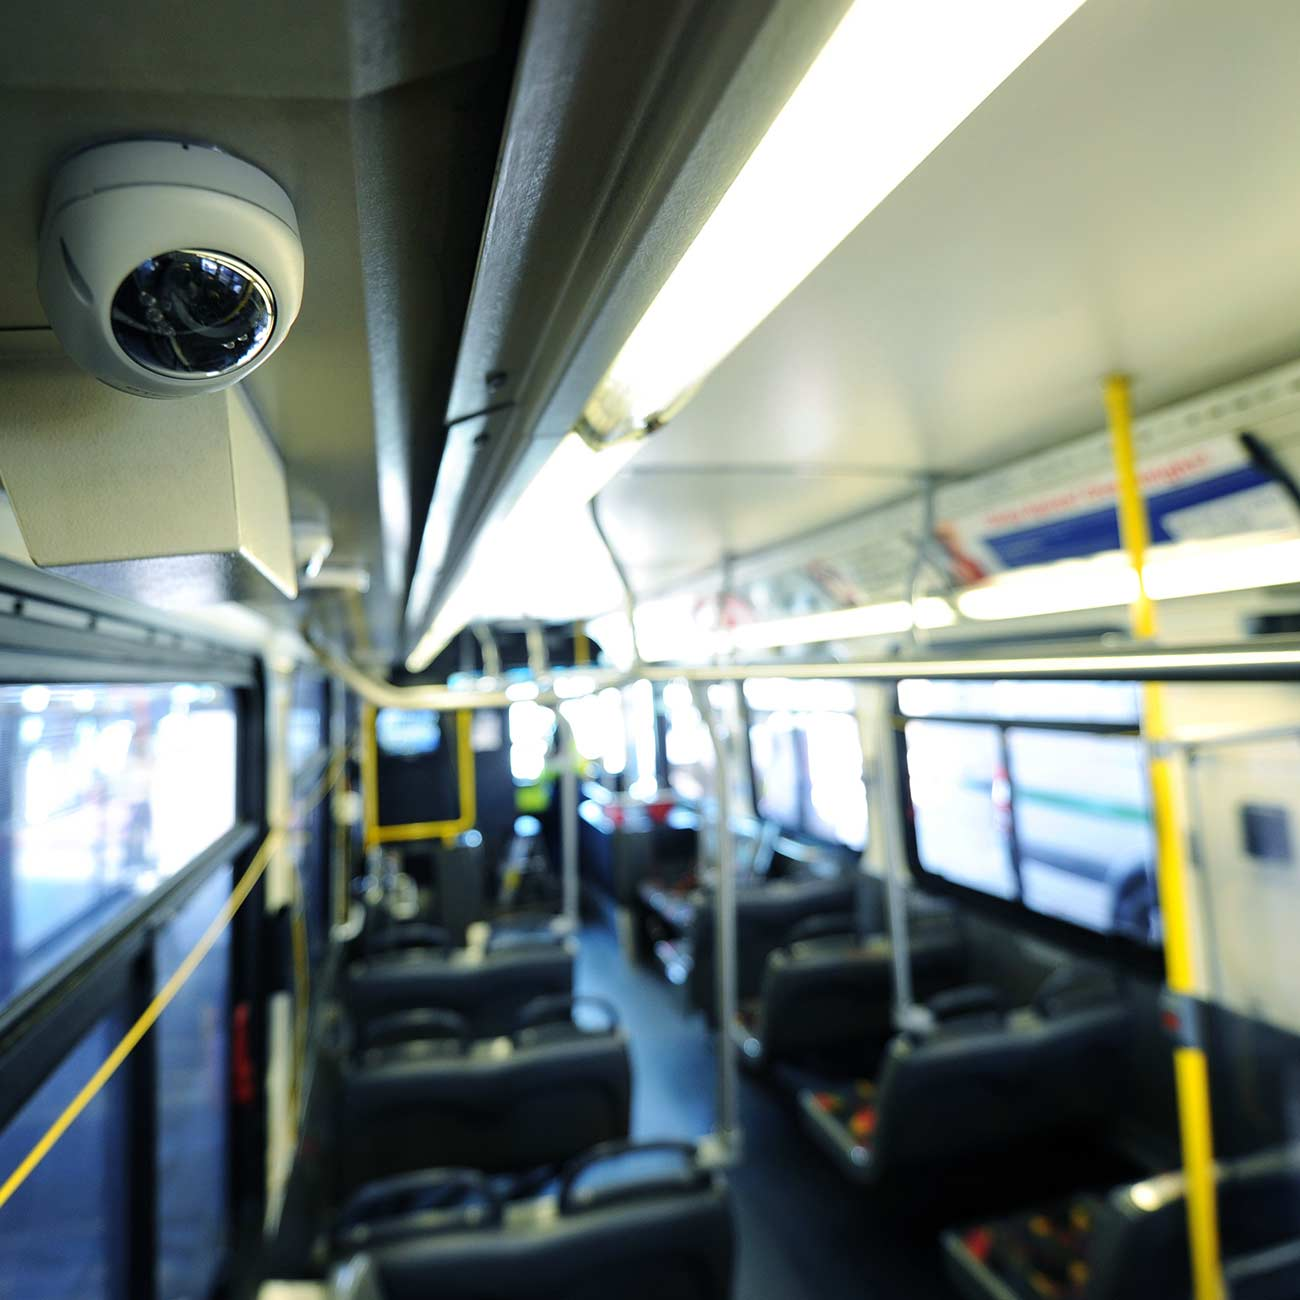 STANDARDIZING TRANSIT SURVEILLANCE